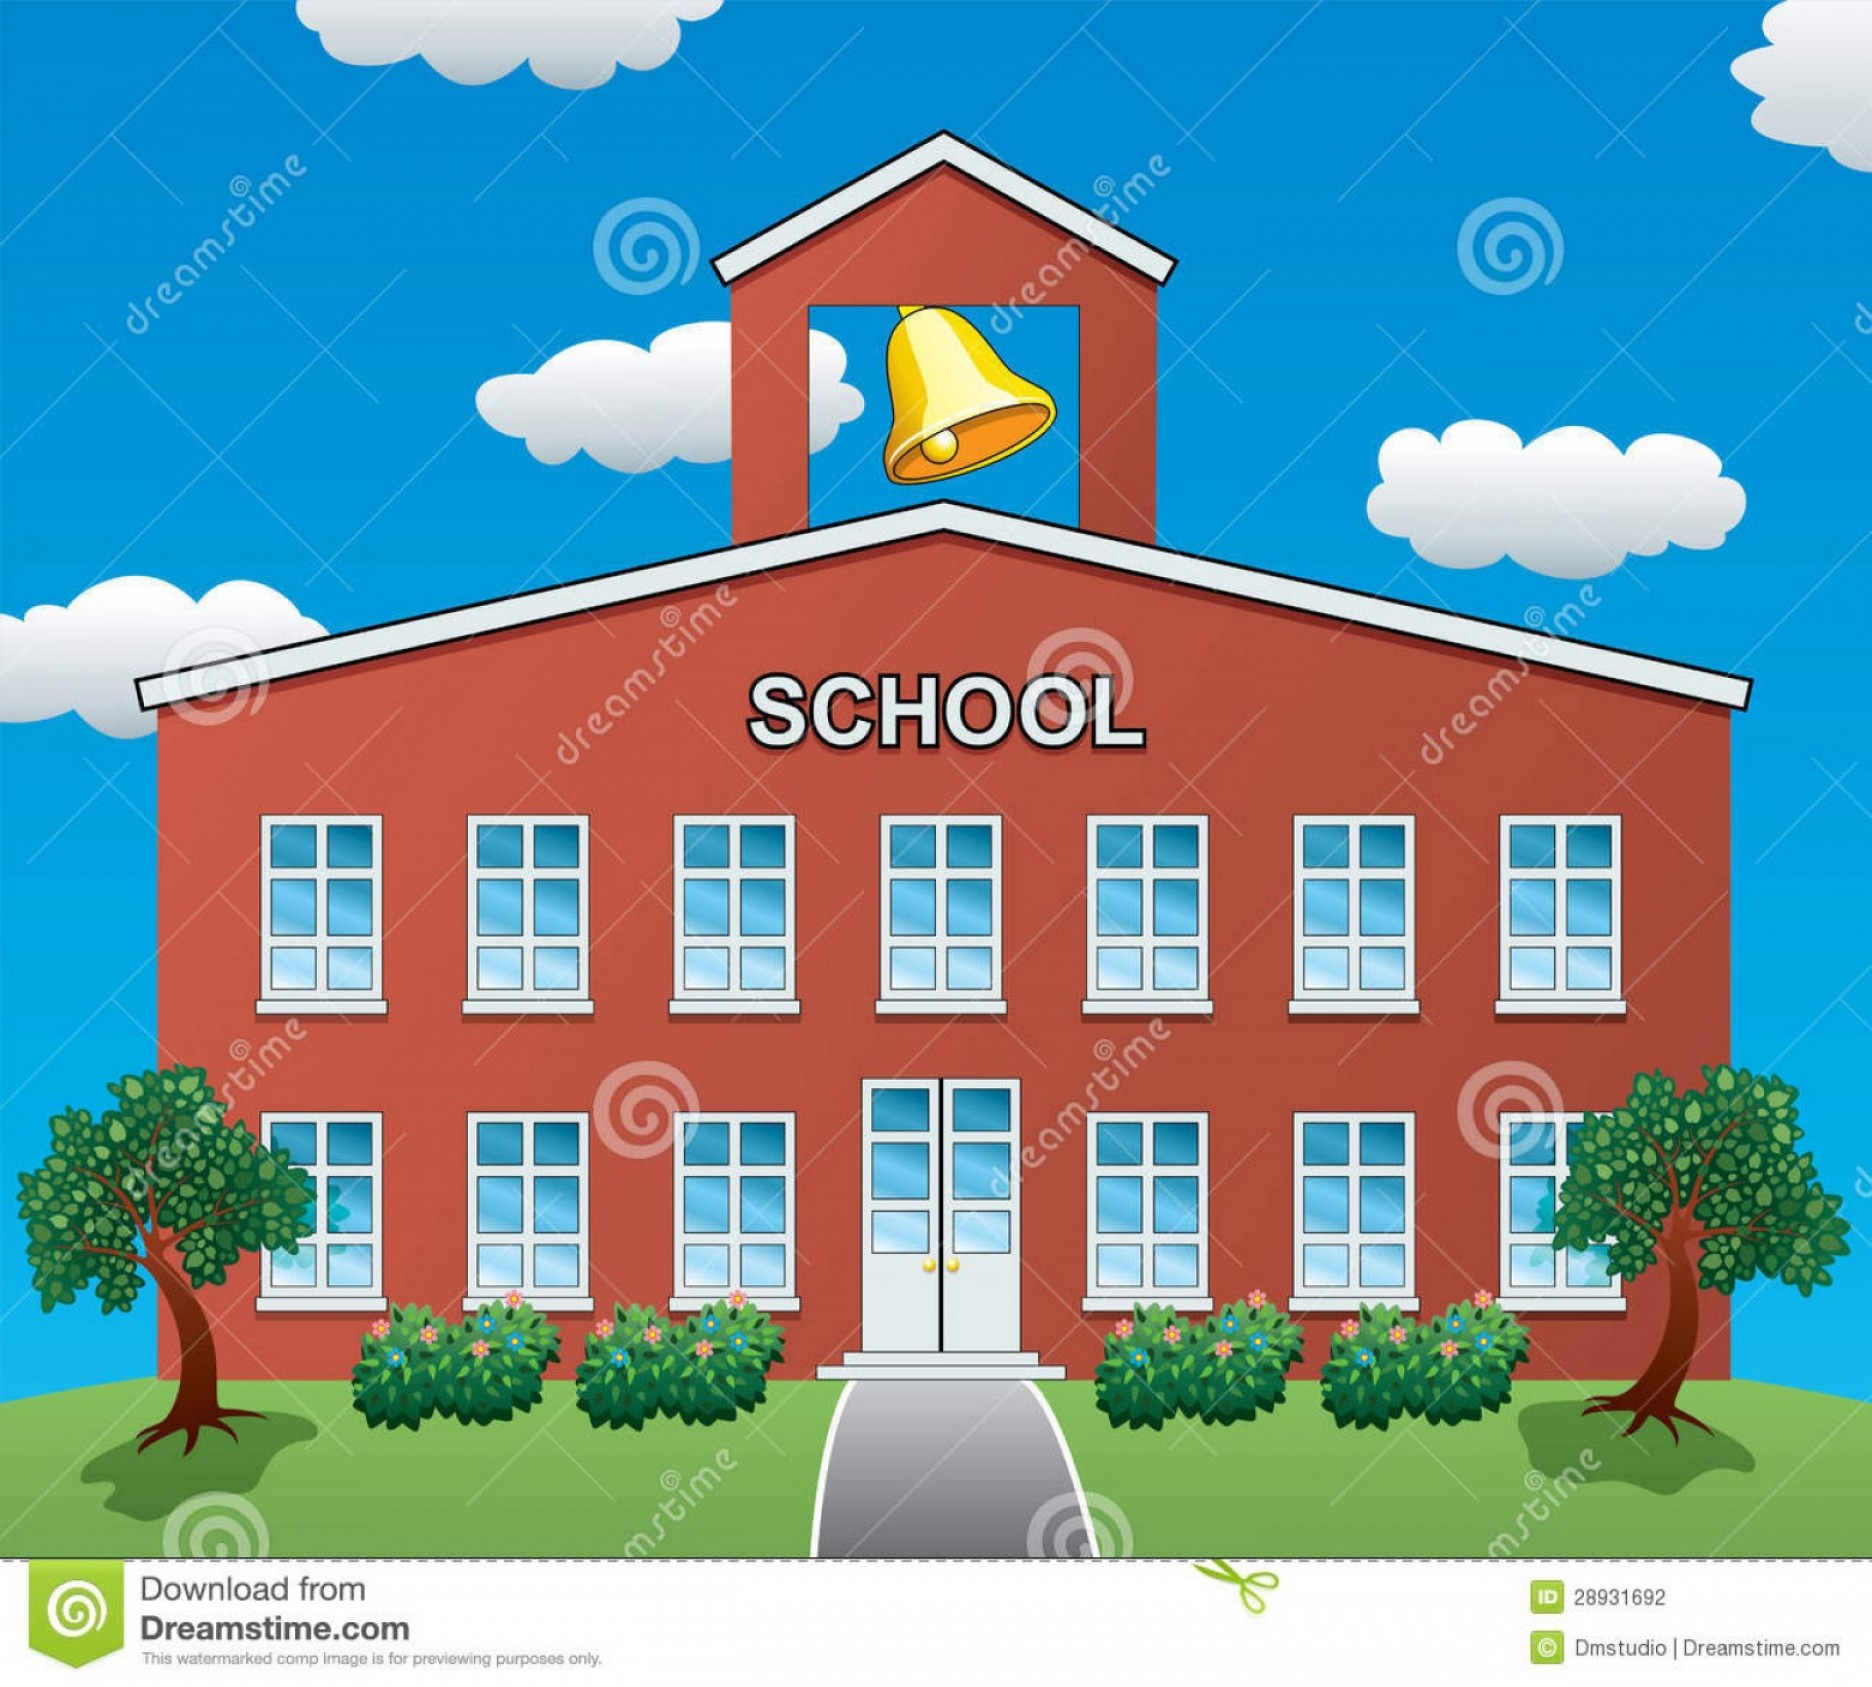 Vector Clip Art Red Schoolhouse: Stock Photography Vector School House Image